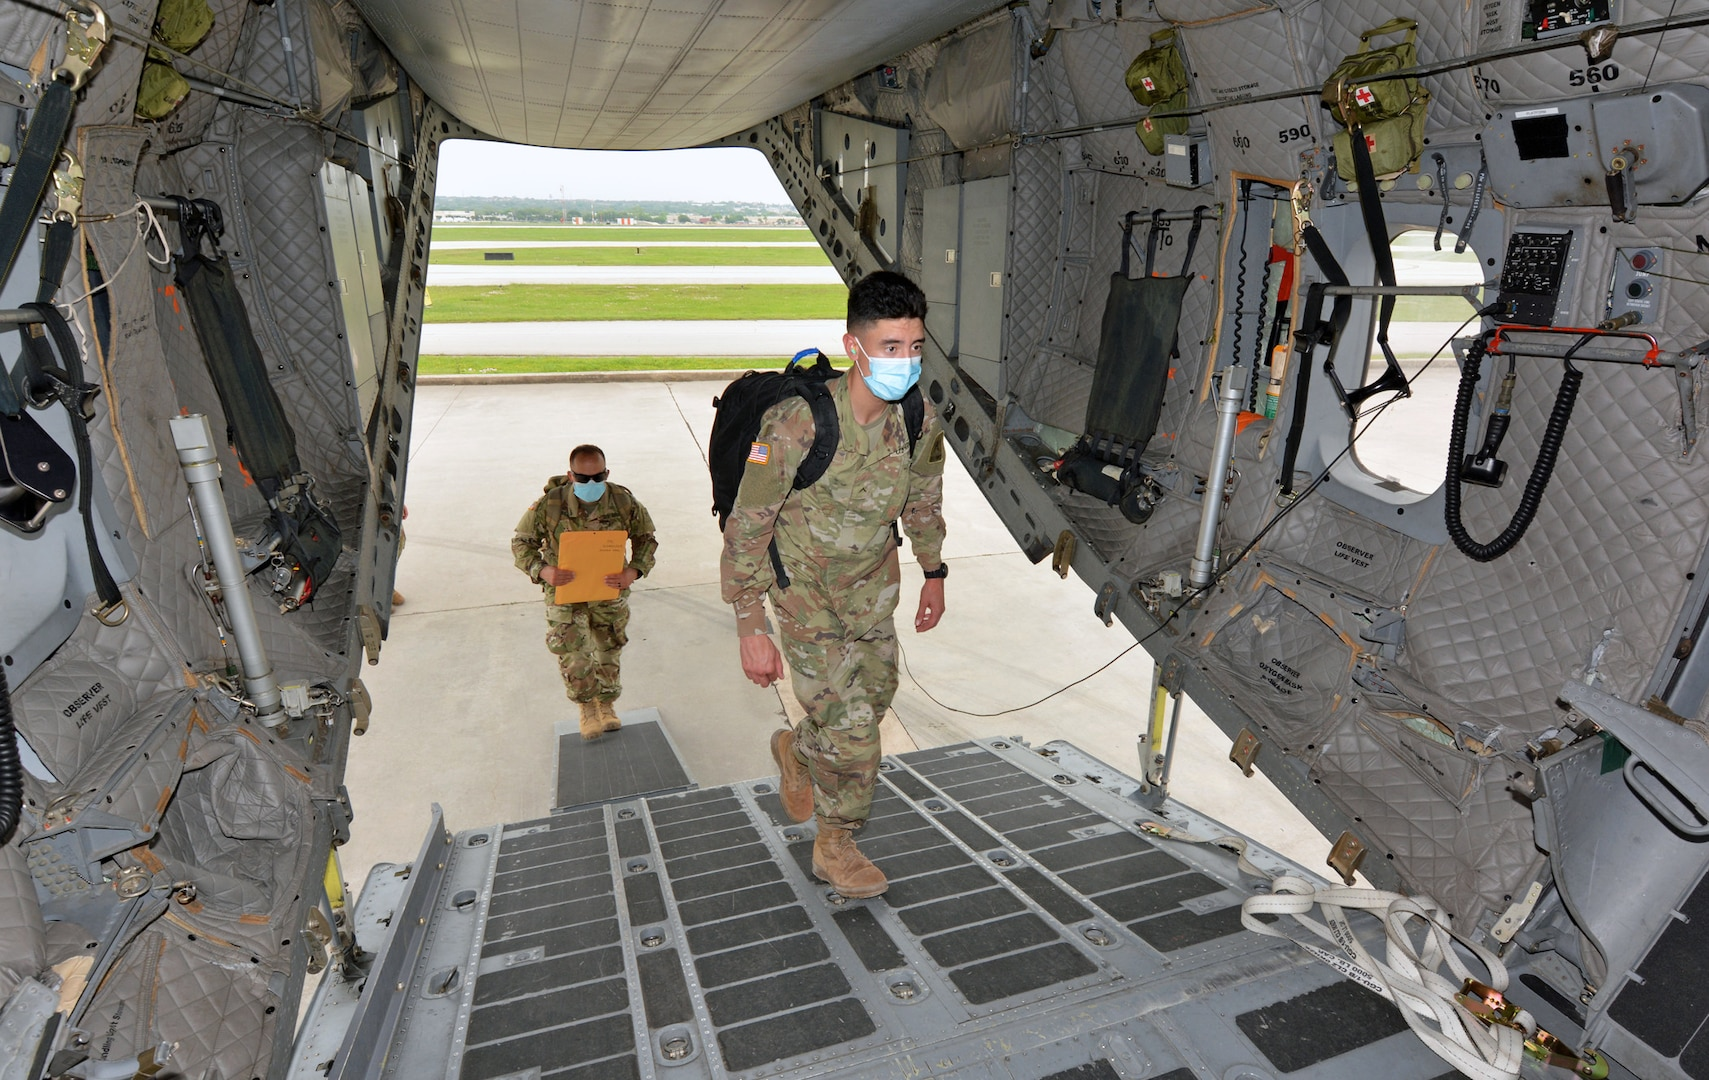 Soldiers board aircraft